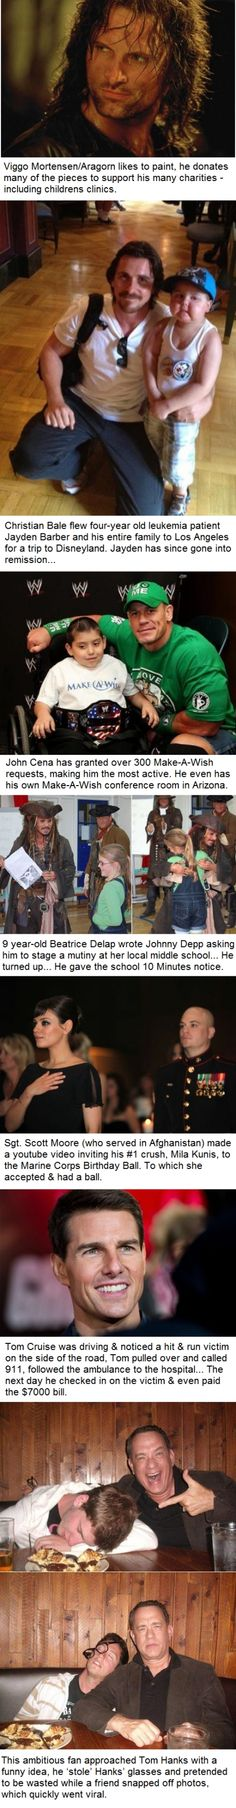 For when your faith in humanity needs to be restored...celebrities that actually do good things